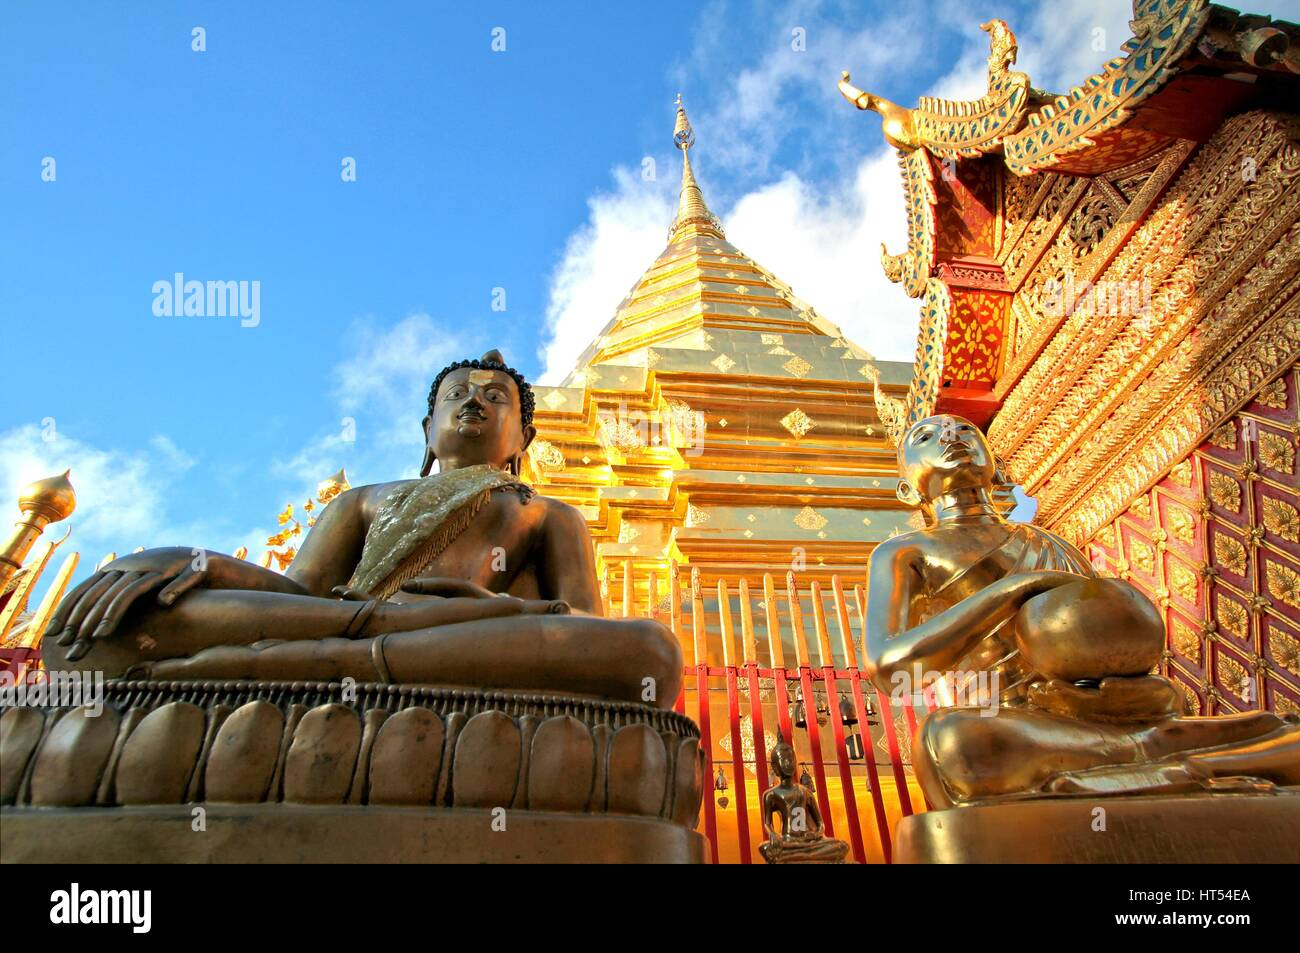 Buddha statues and golden pagoda against clear blue sky at Wat Phra That Doi Suthep, A famous Theravada buddhist - Stock Image